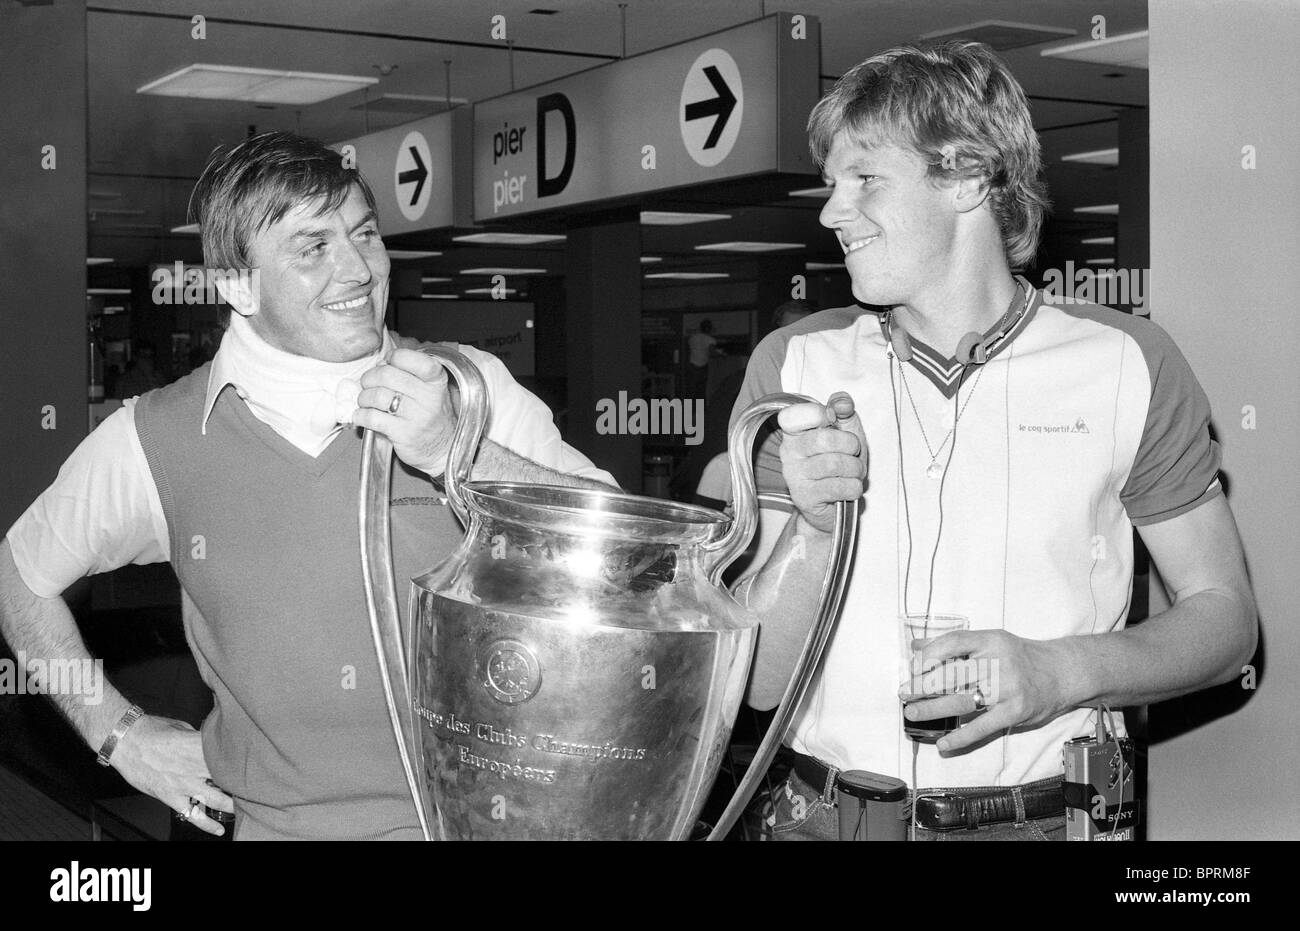 Aston Villa footballers Jimmy Rimmer and Nigel Spink with the European Cup at East Midlands Airport in 1982 - Stock Image